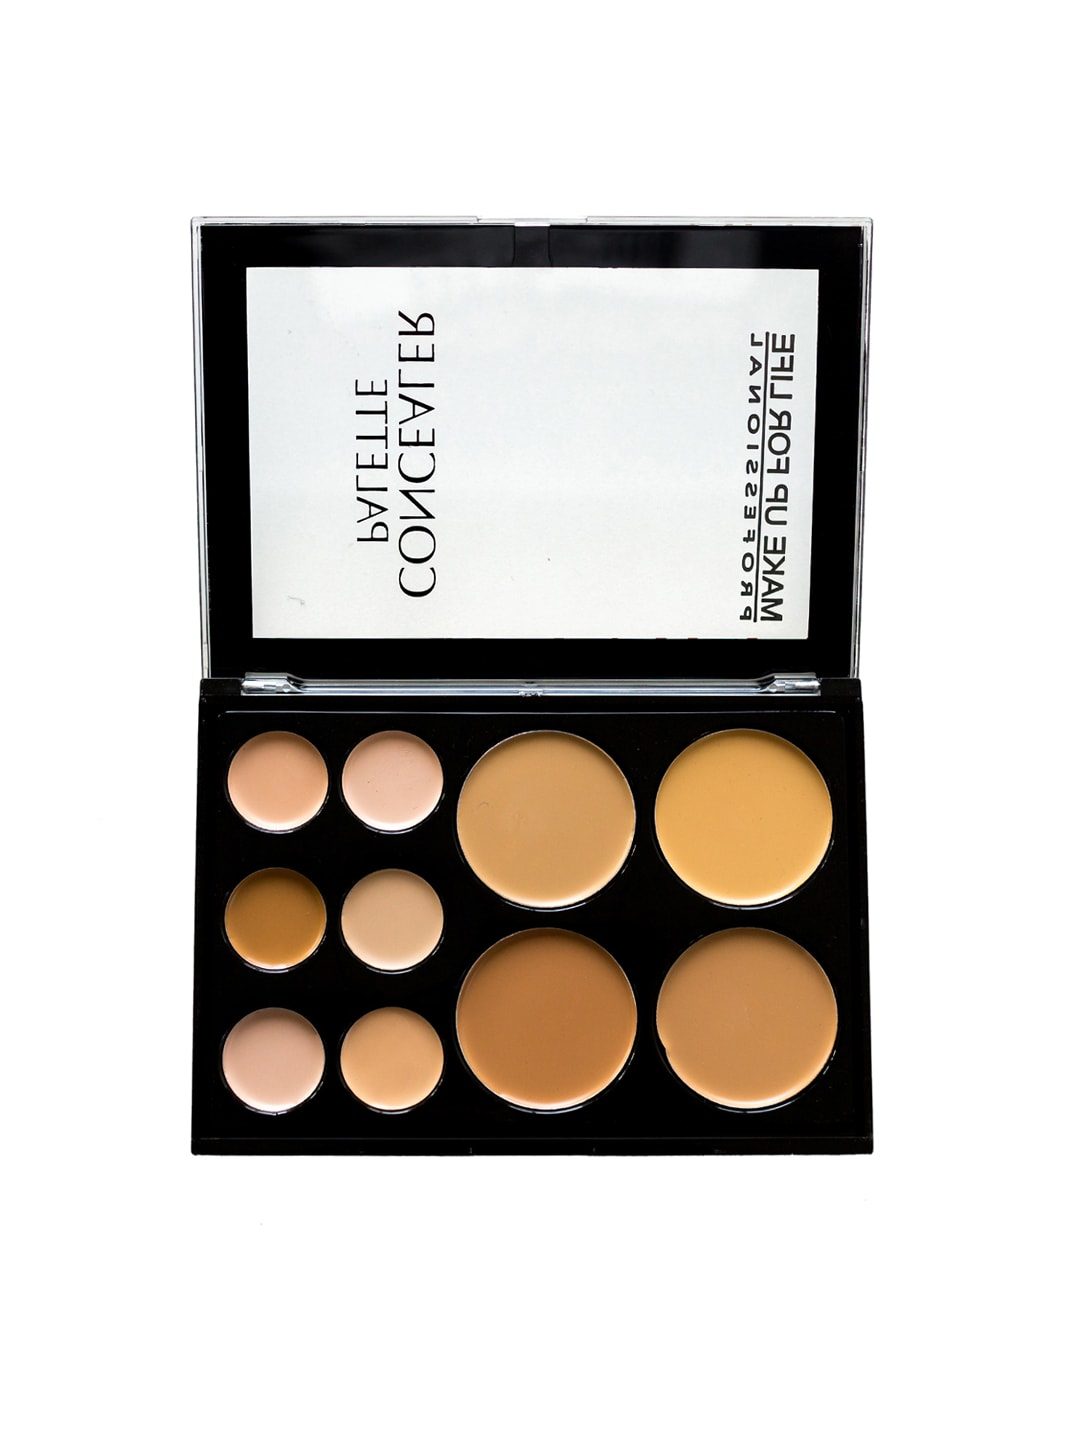 MAKE UP FOR LIFE Concealer Palette image